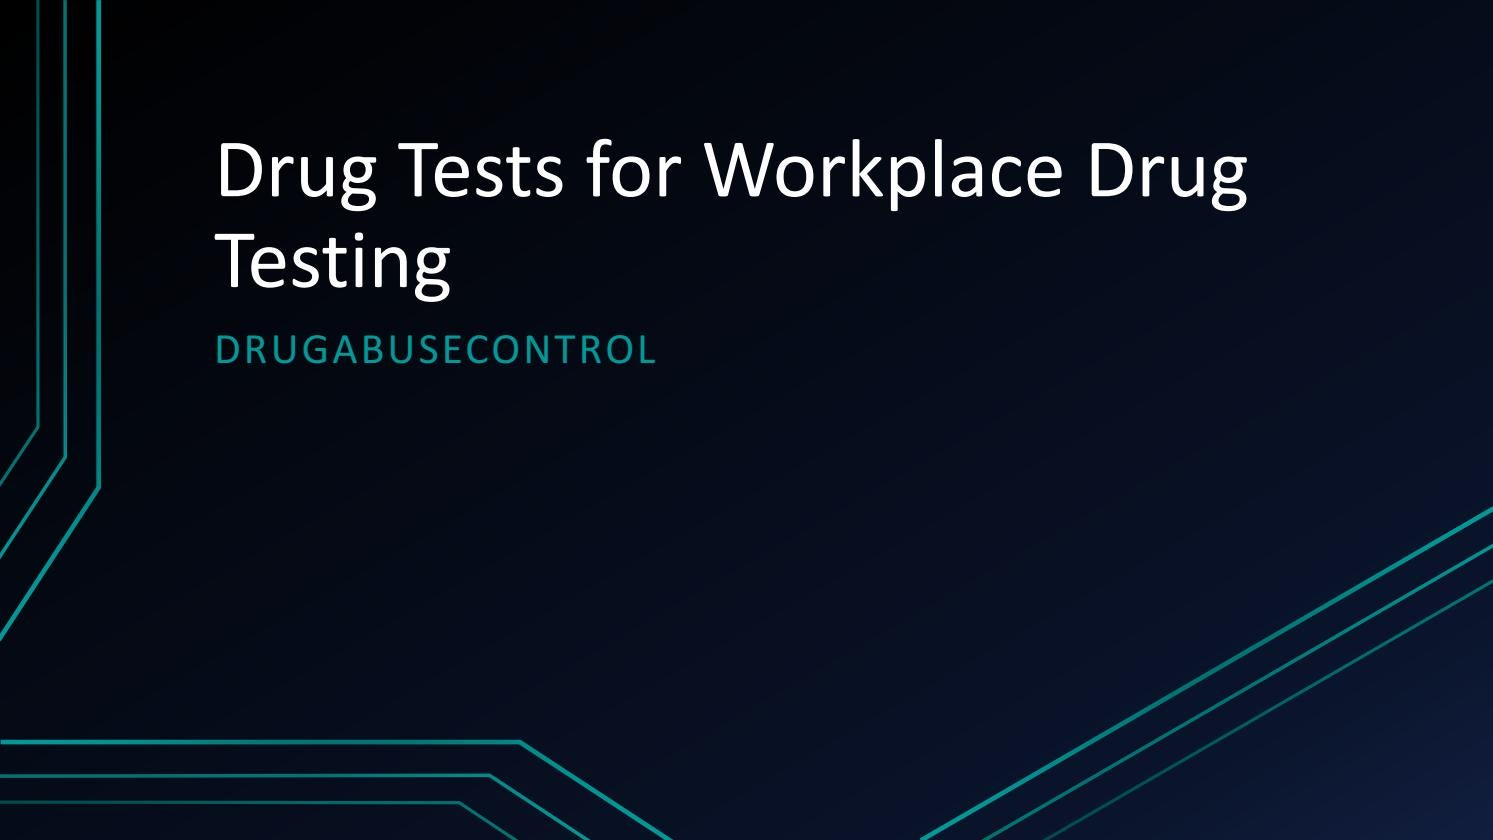 an analysis of the workplace drug testing in the united states An analysis of the workplace drug testing in the united states pages 2 words 959 view full essay more essays like this.